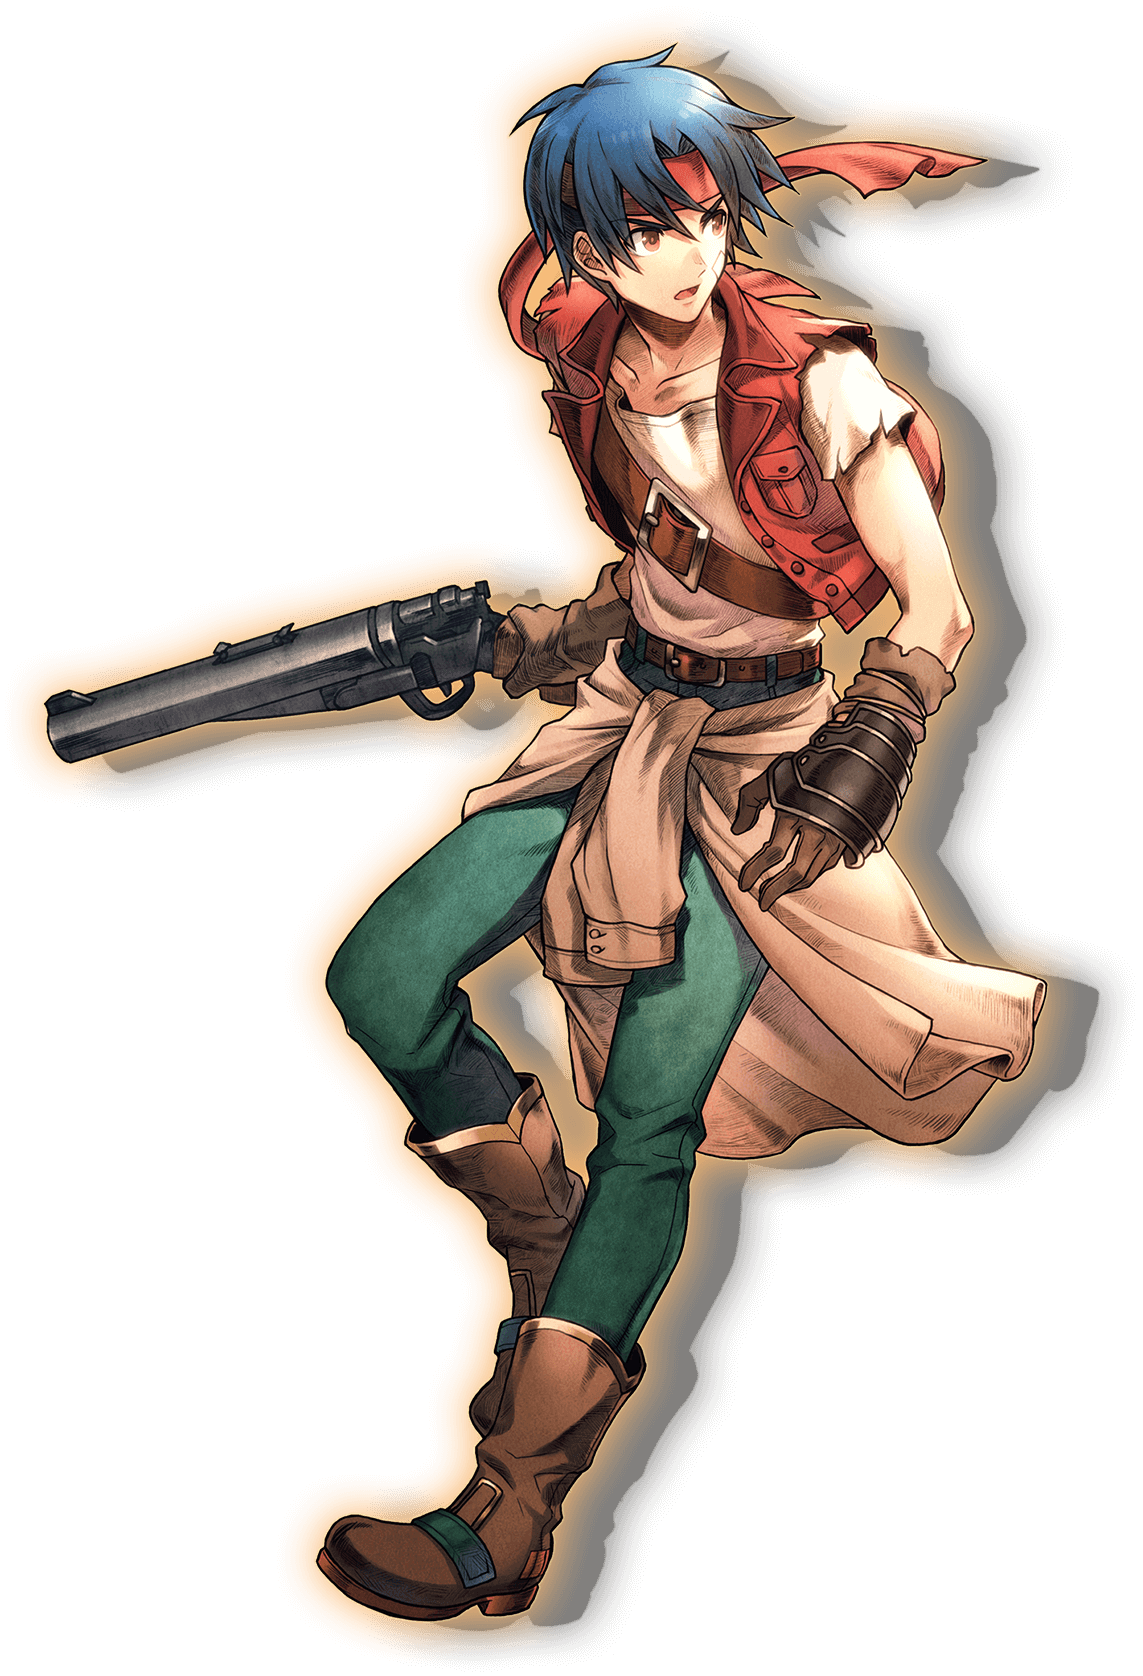 Rudy roughknight wiki fandom. Wild arms 4 jude maverick png vector black and white library